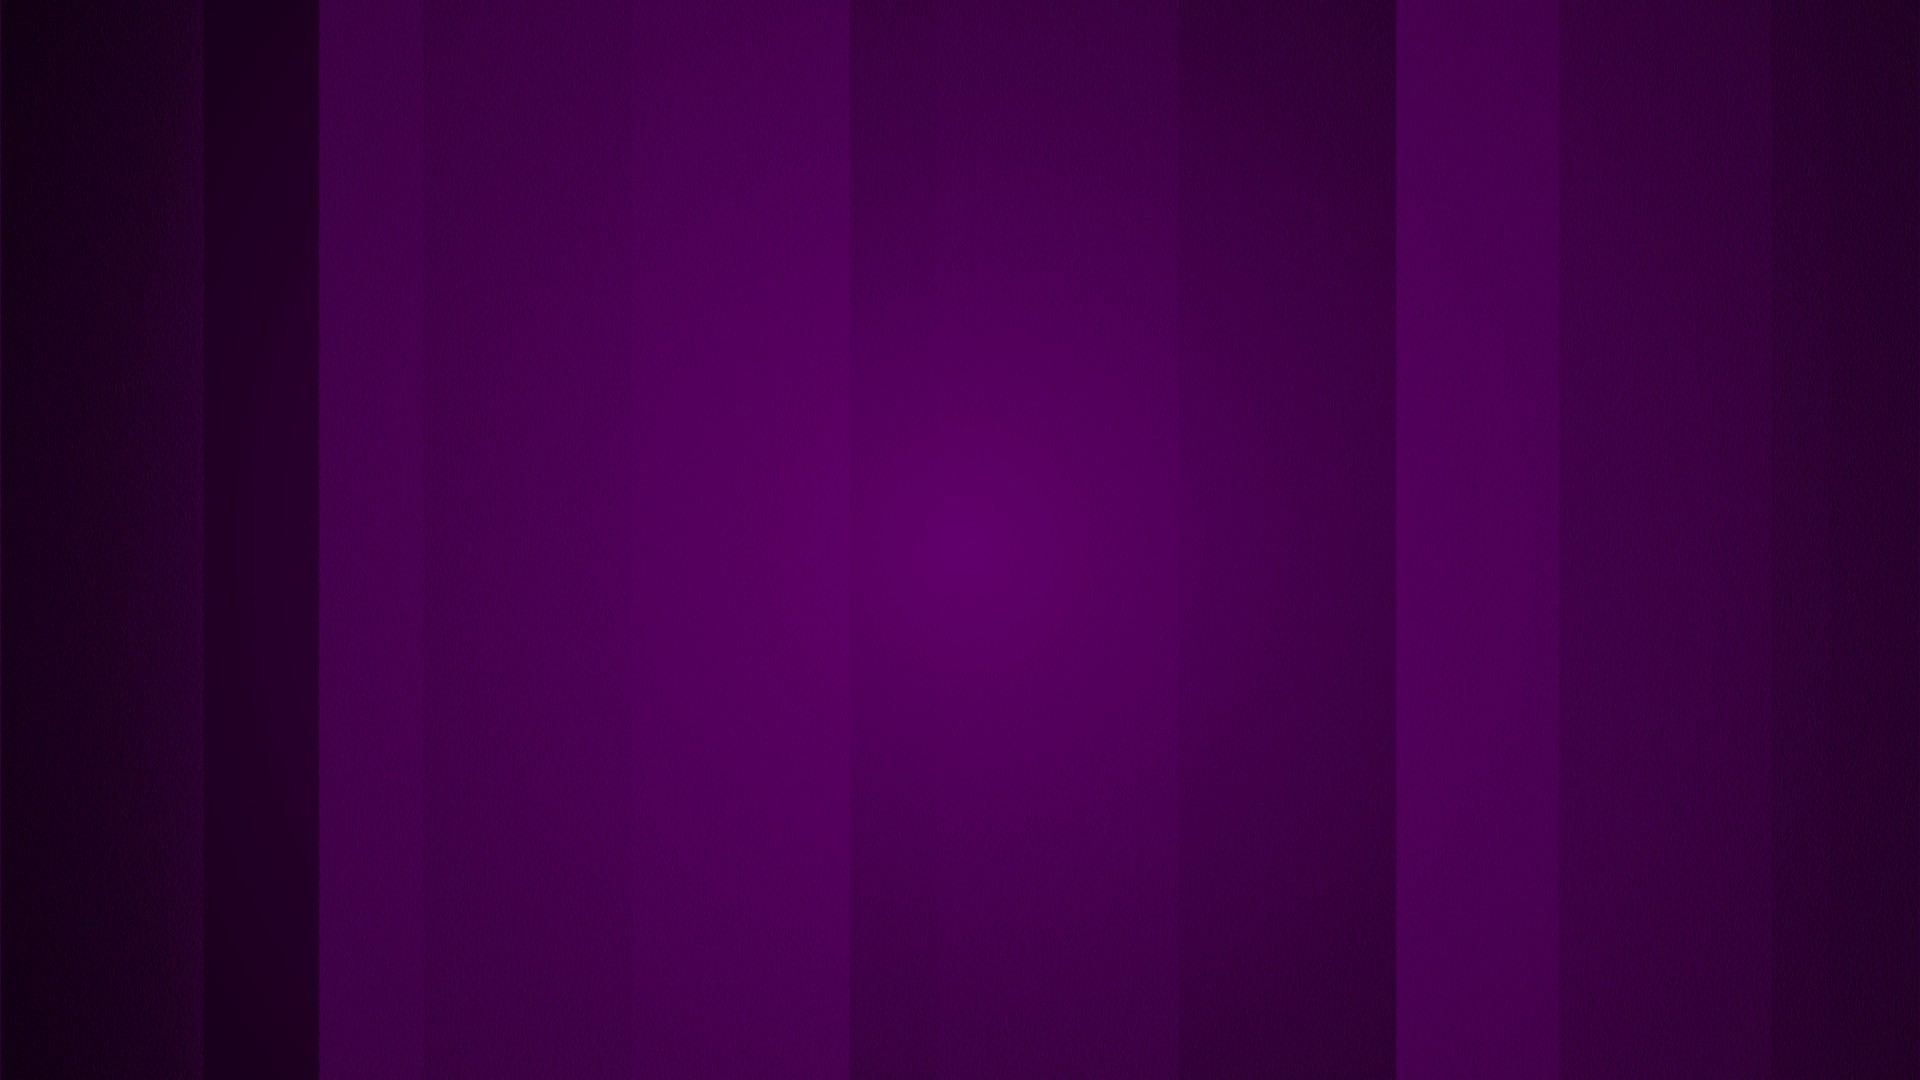 purple wallpaper 46456 1920x1080px